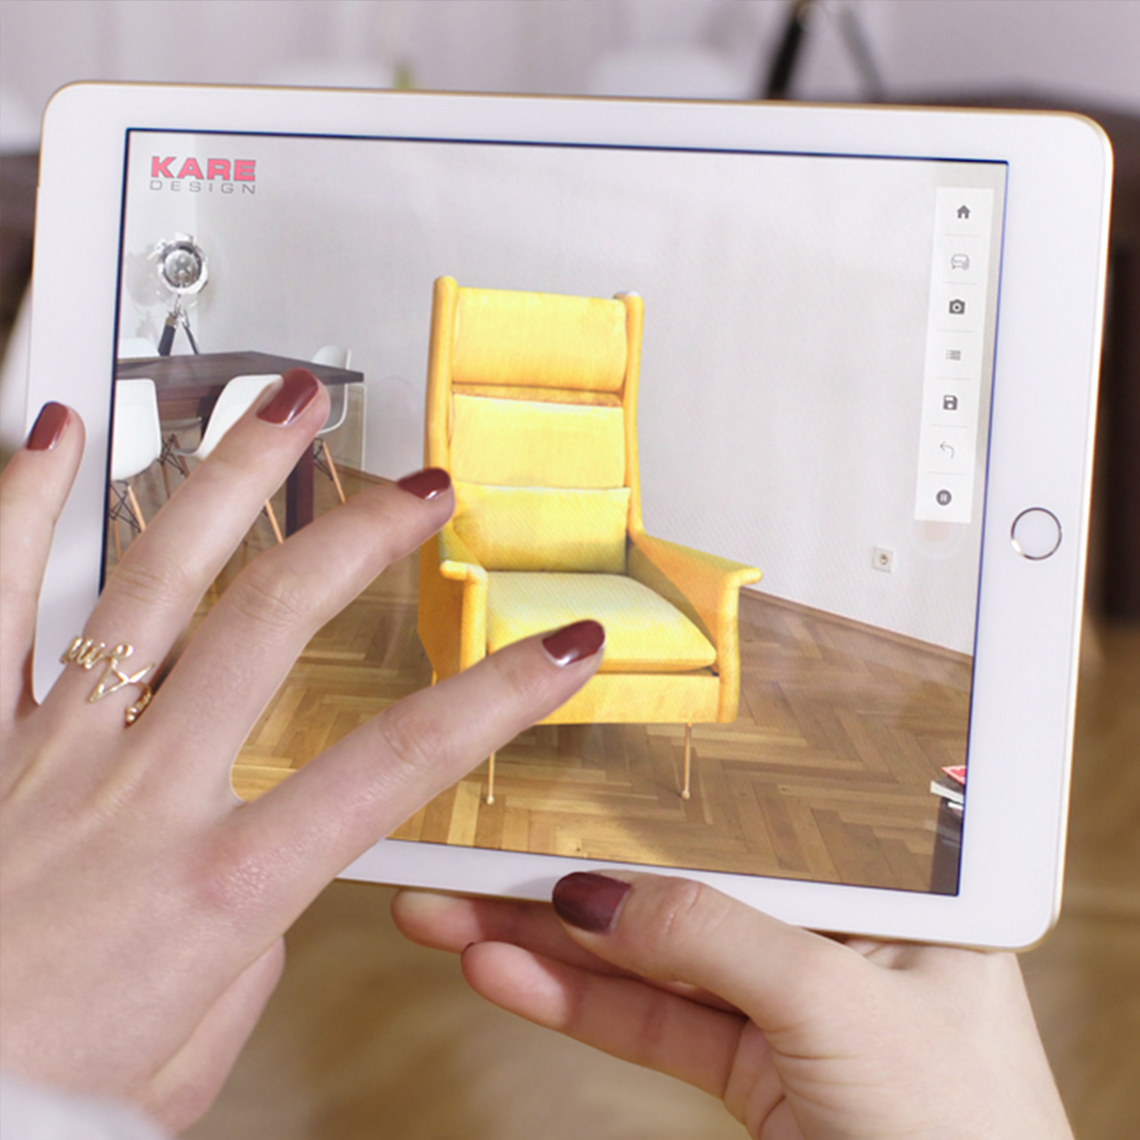 3D Room Designer App By KARE